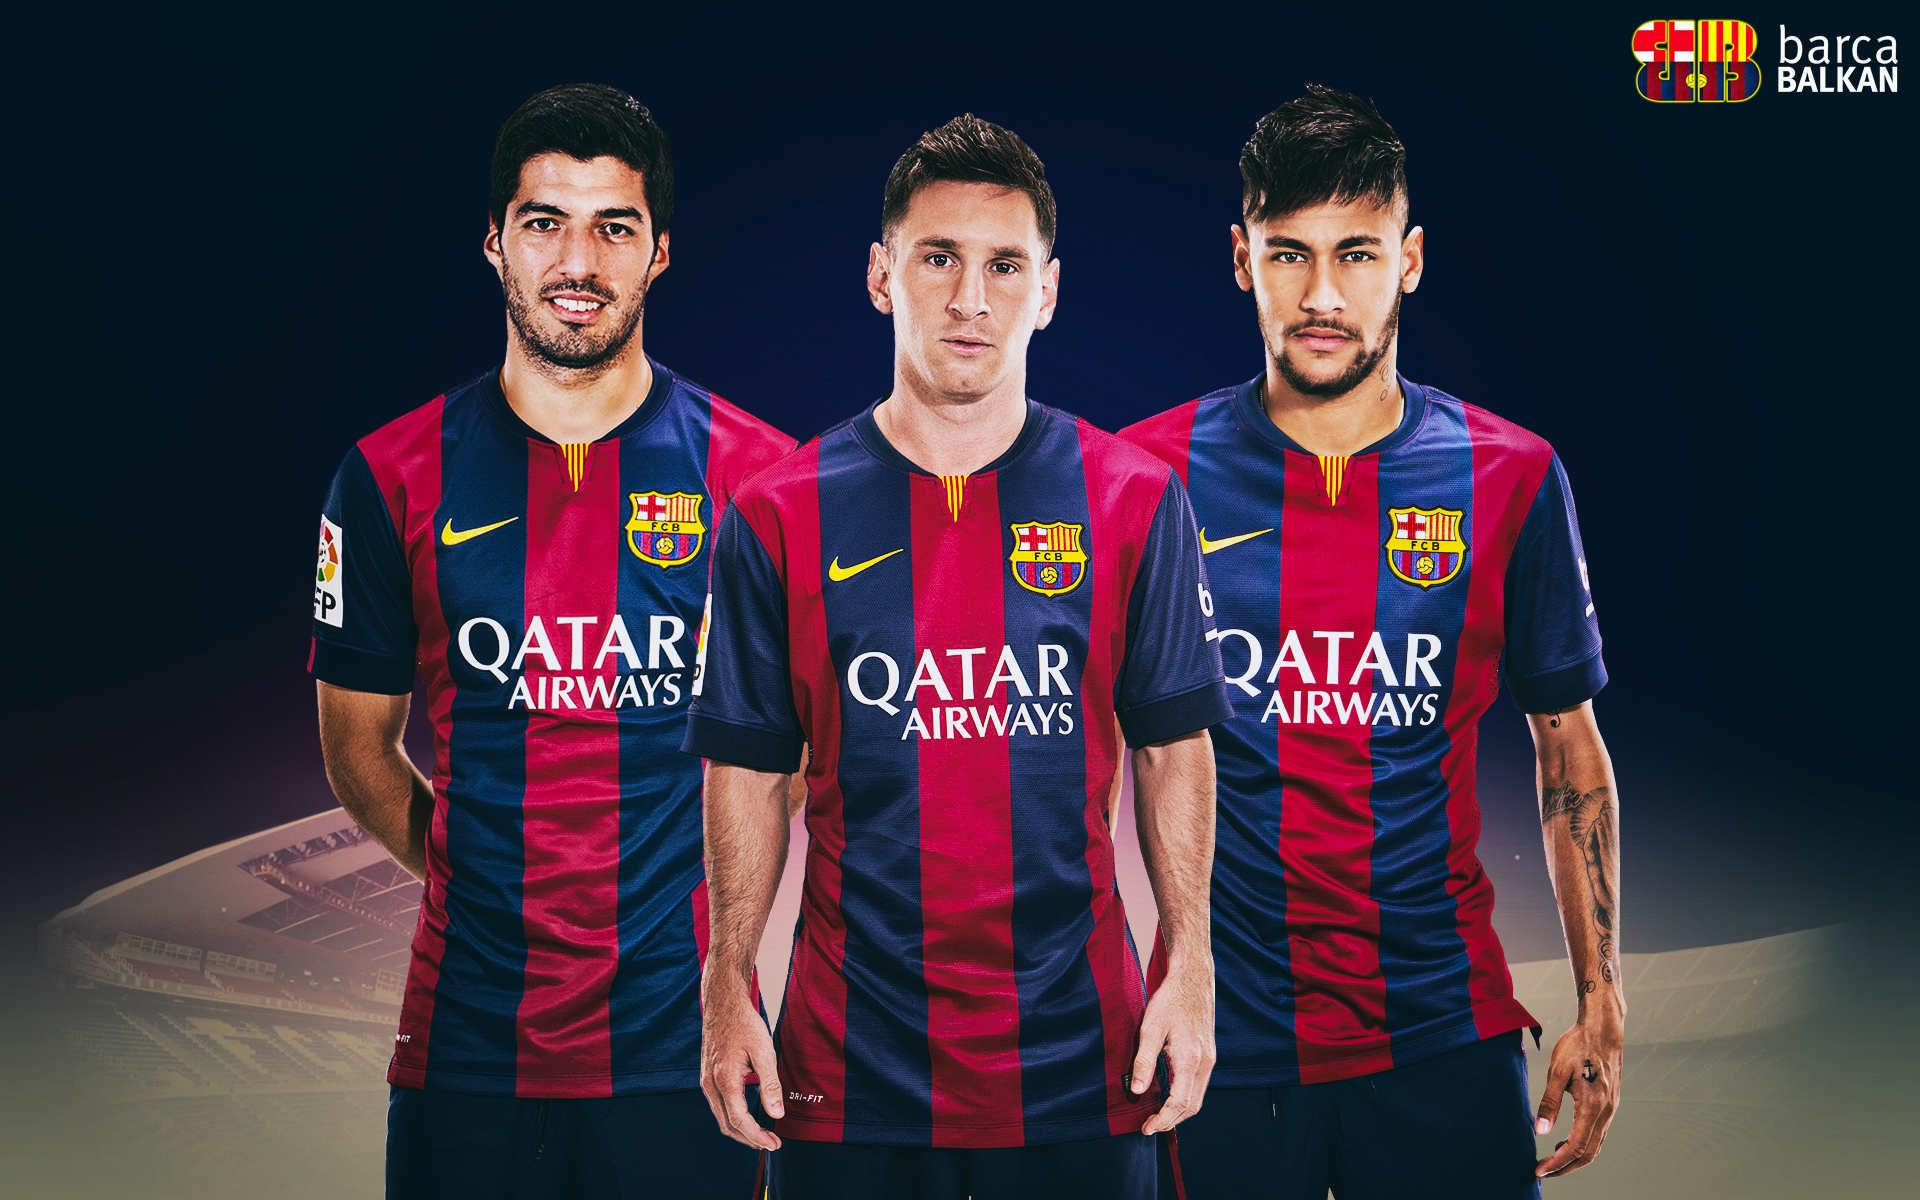 Messi And Neymar And Suarez Wallpaper 9